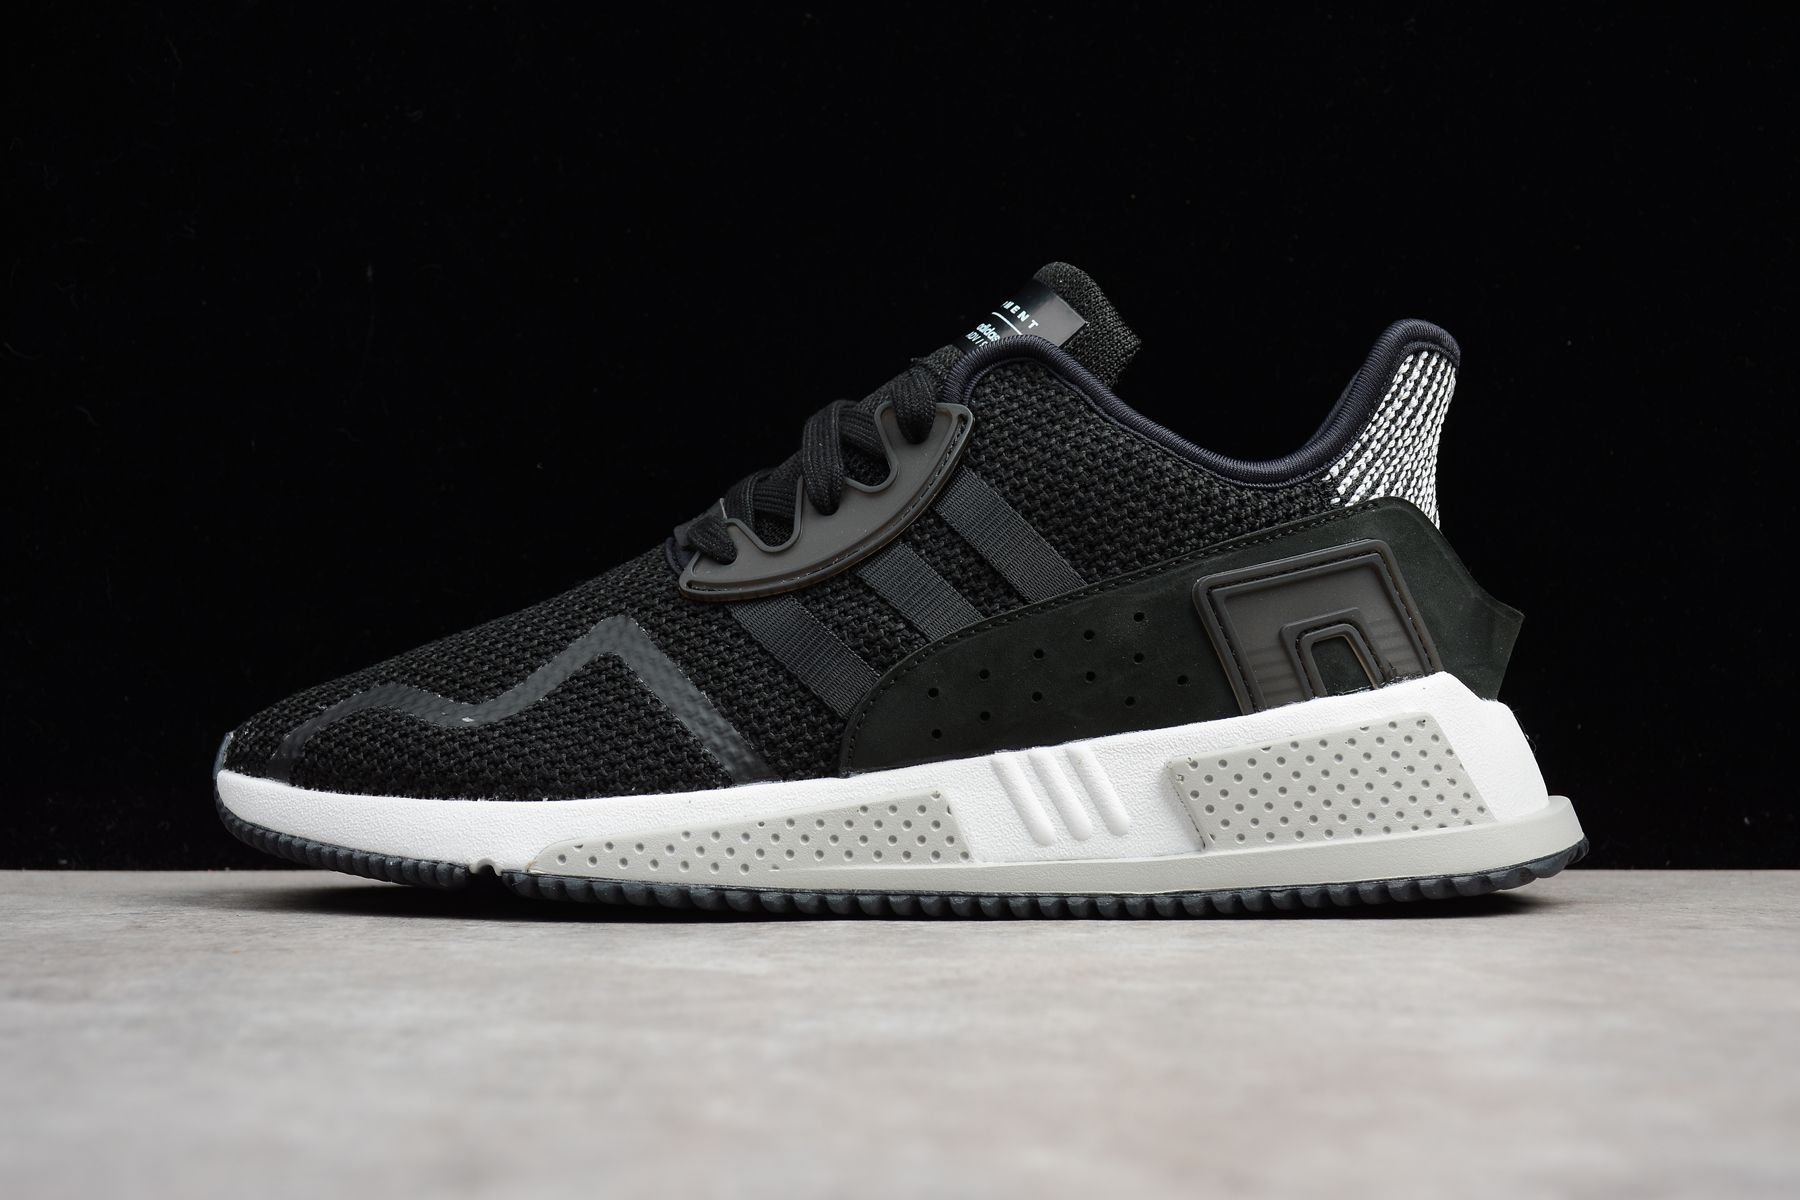 best sneakers 9b550 a1684 2018 UK FR Trainers Adidas Originals EQT Cushion ADV EQT Black White